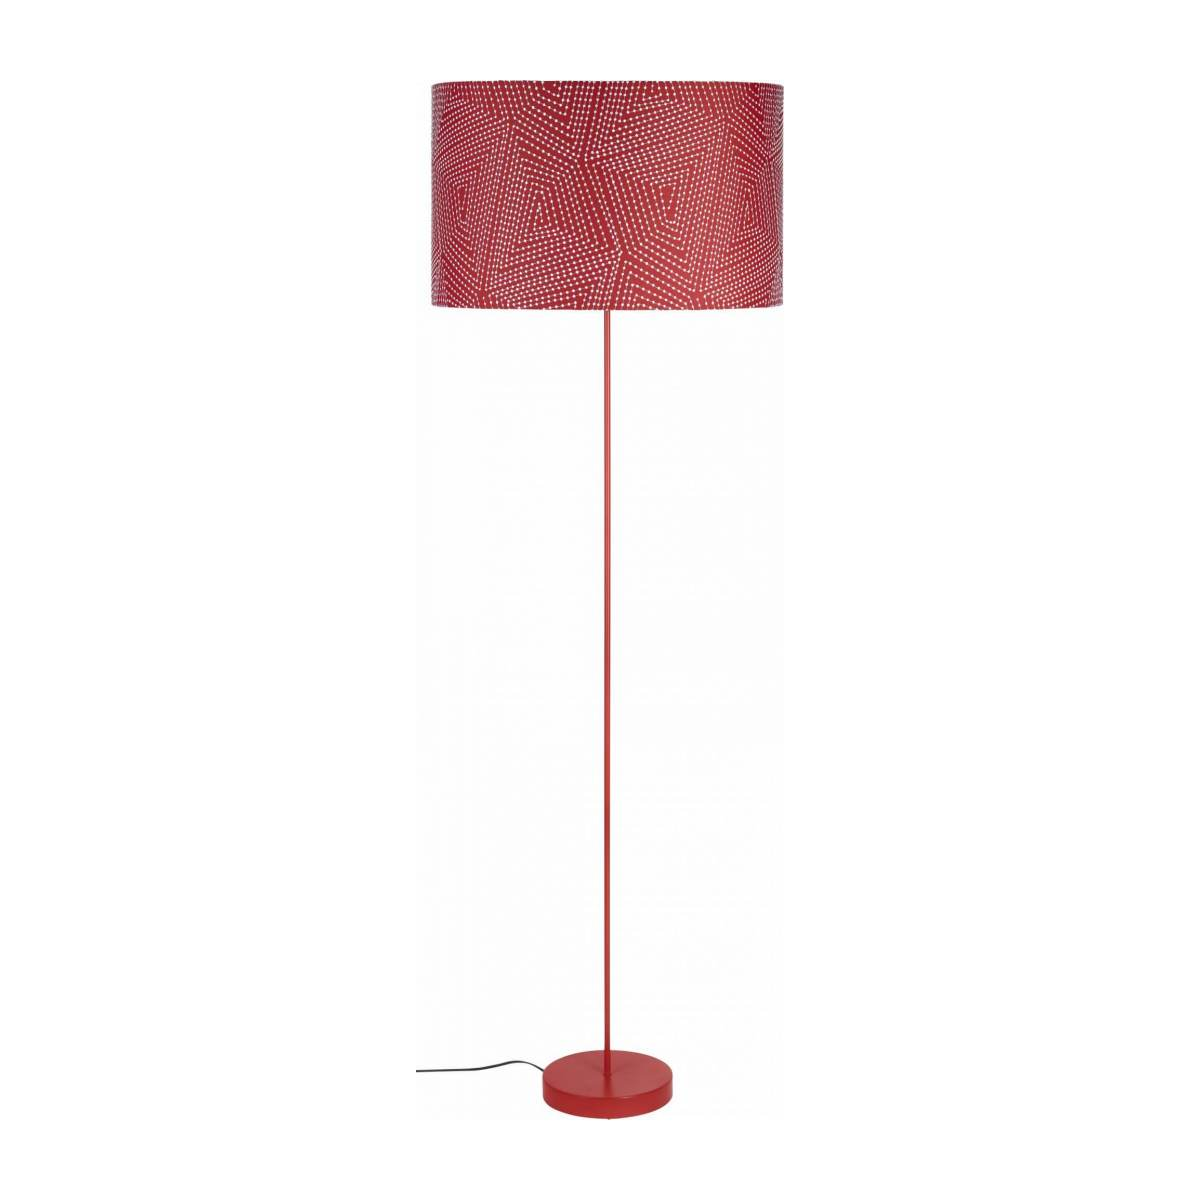 Lampshade 53cm, red with white patterns n°3